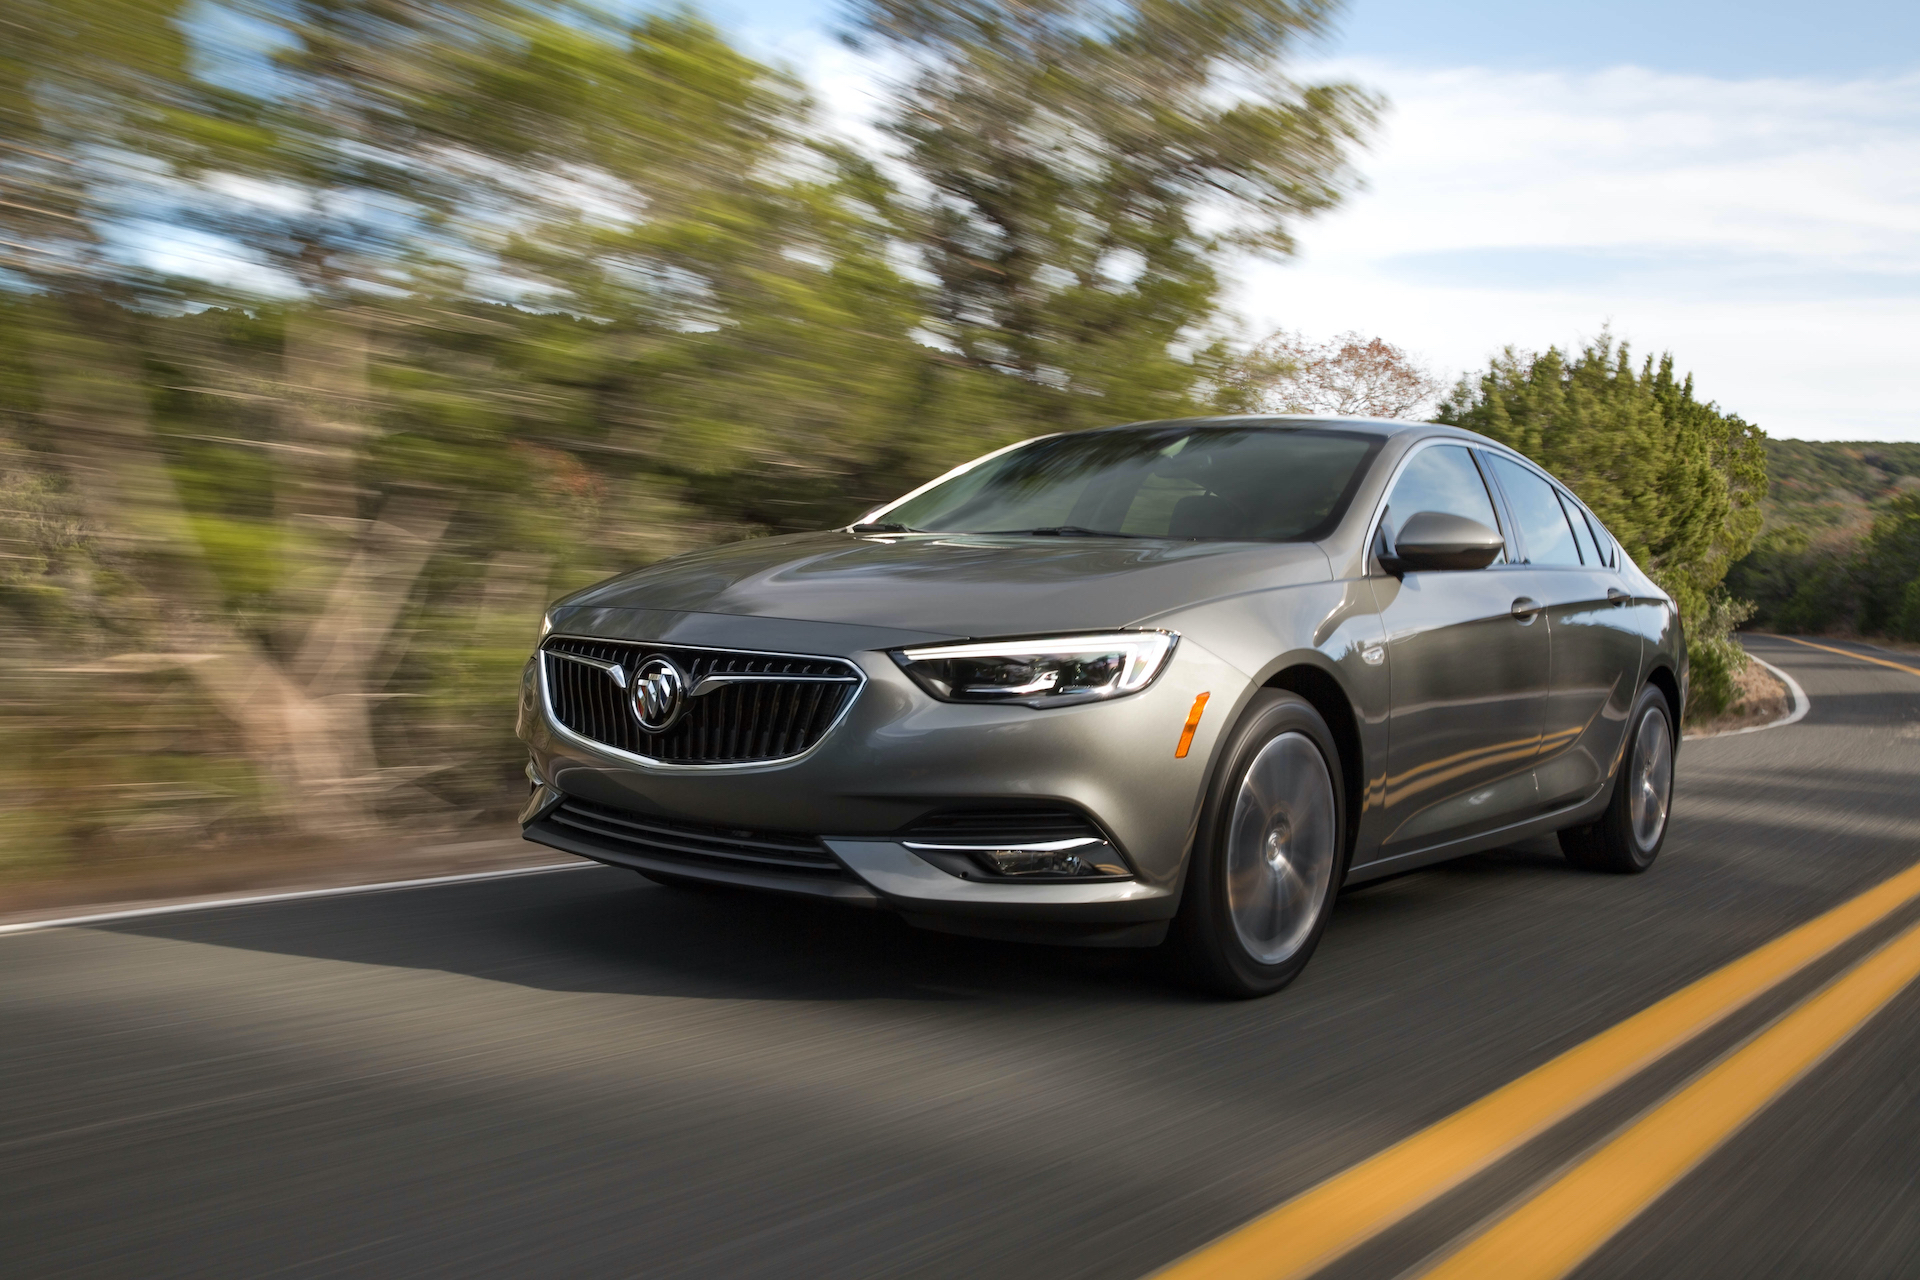 Buick Regal Won't Return For 2021 2021 Buick Regal Interior, Inventory, Images